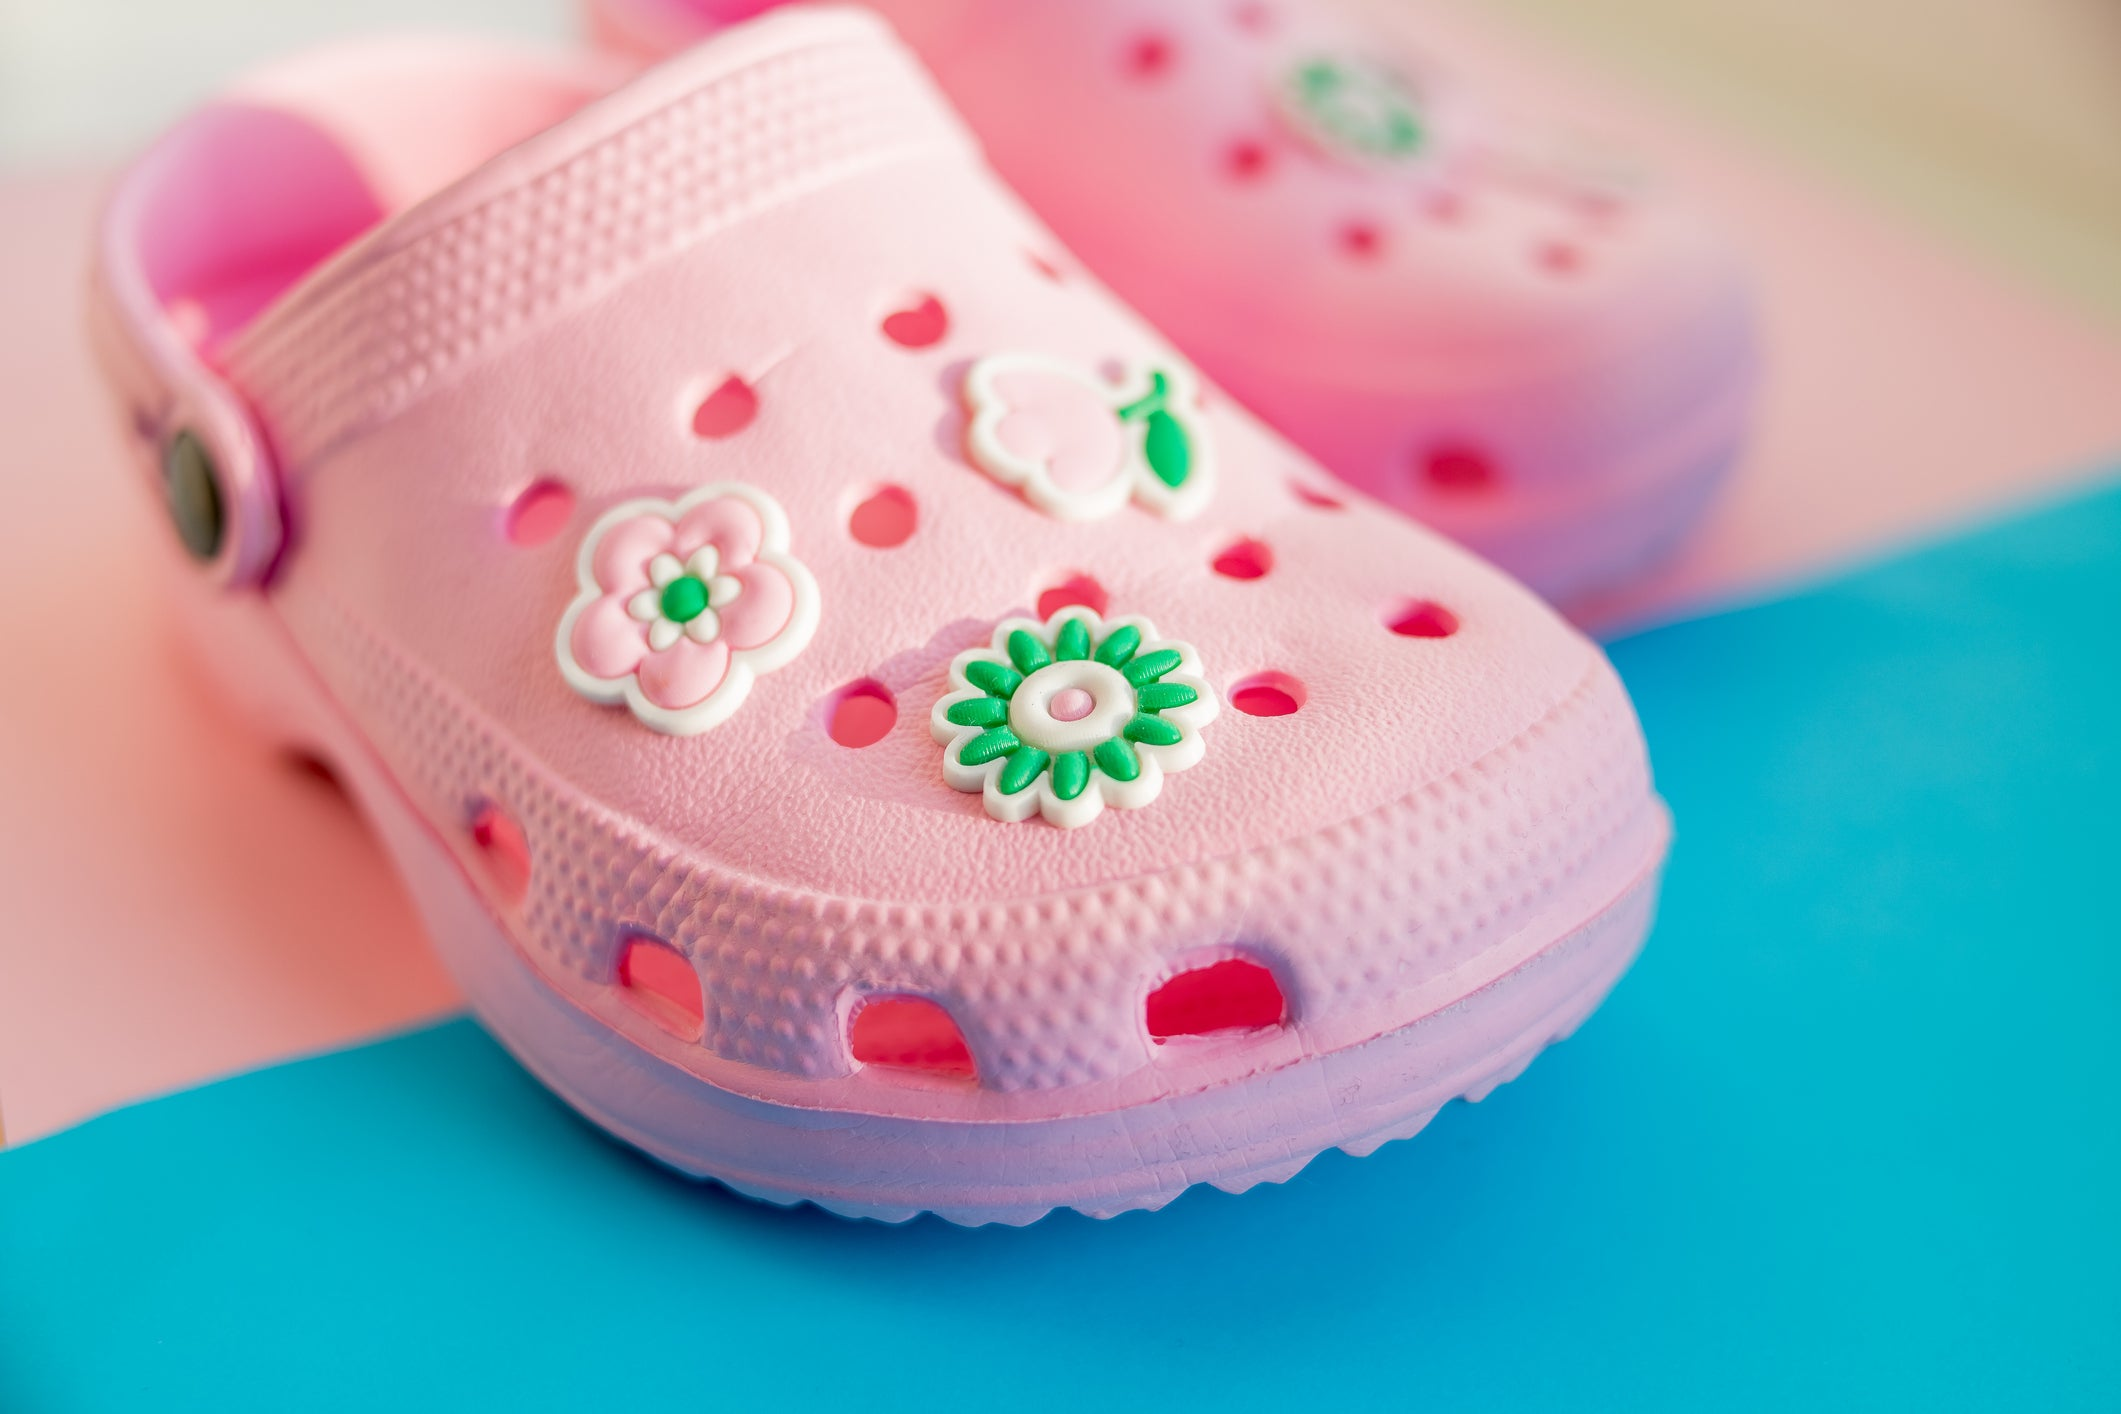 5 Things You Need to Know About Crocs